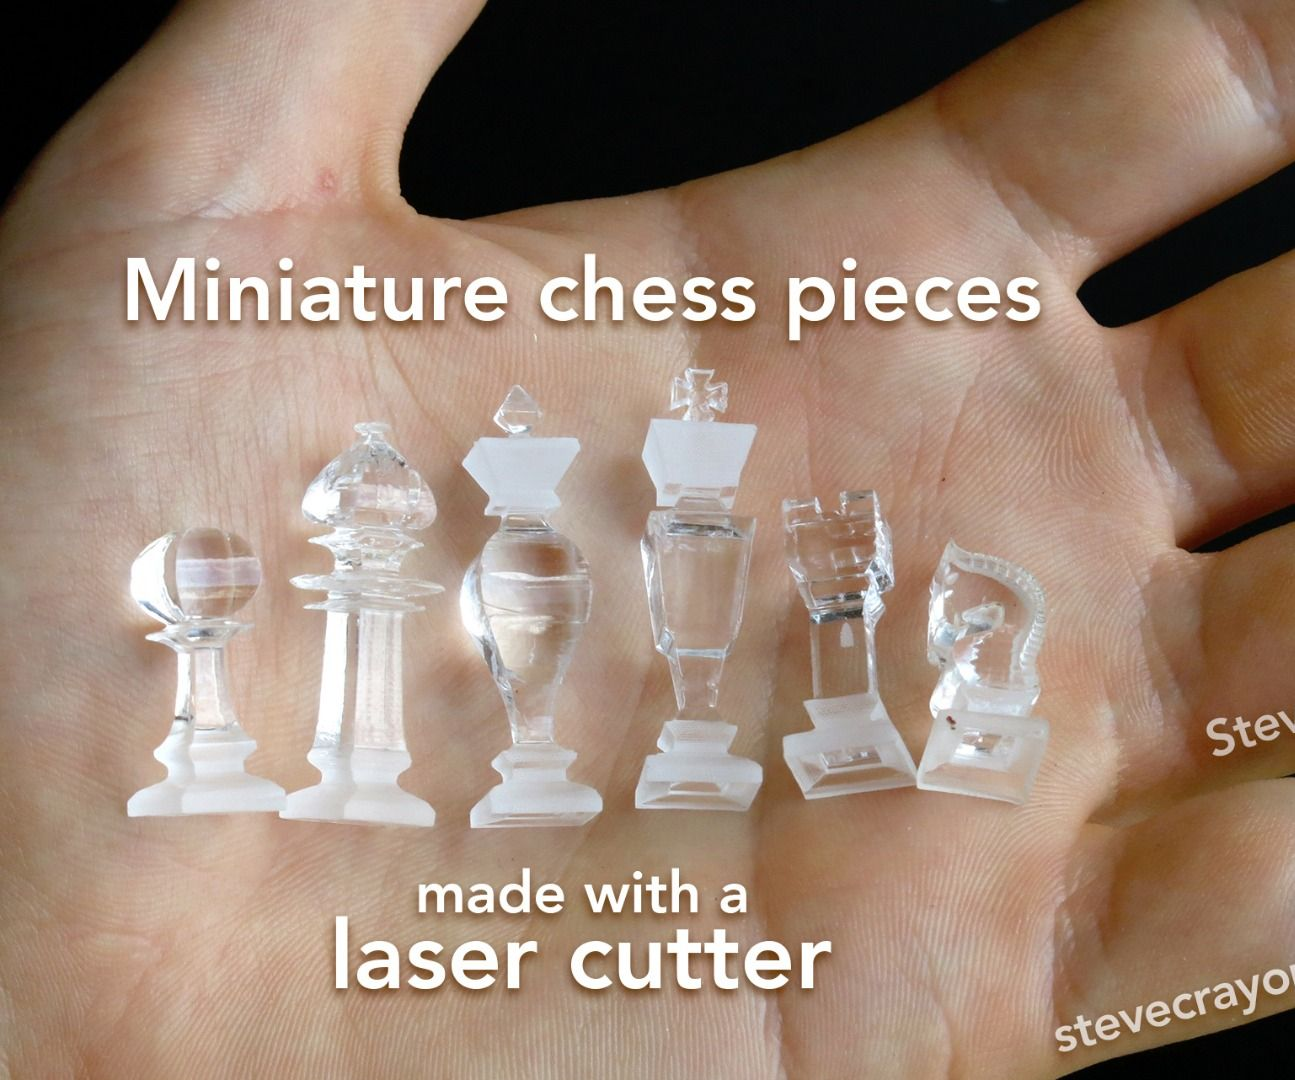 3D Miniature Chess Pieces made with a Laser Cutter